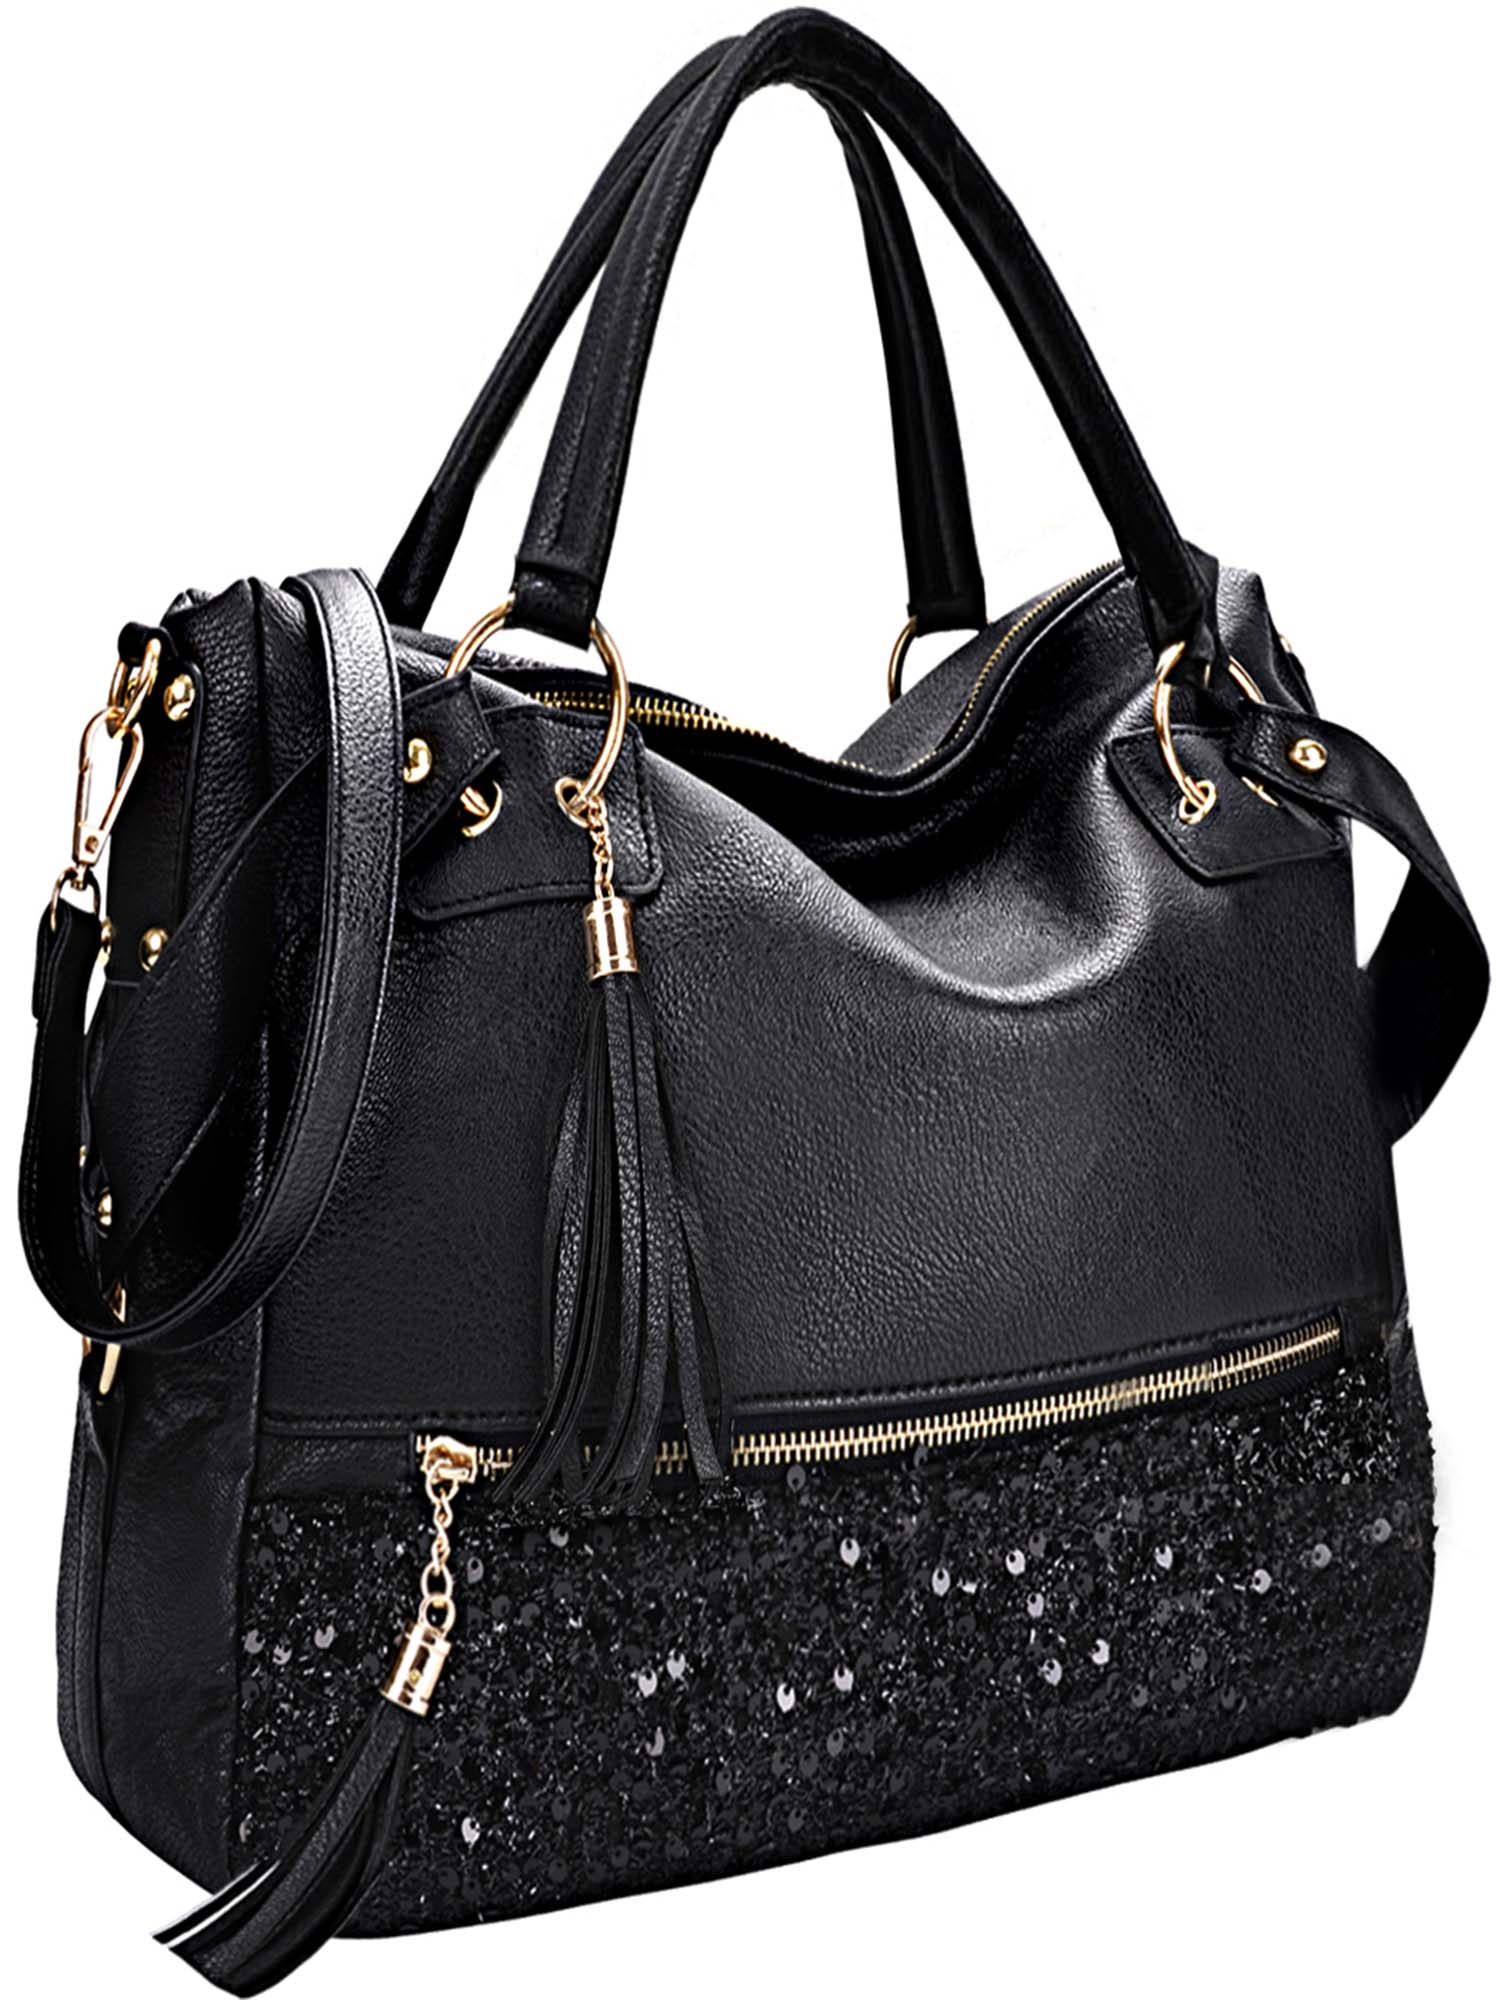 Womens Handbags, Coofit Fashion Punk Style Shining Sequin Faux Leather Tote Bag...